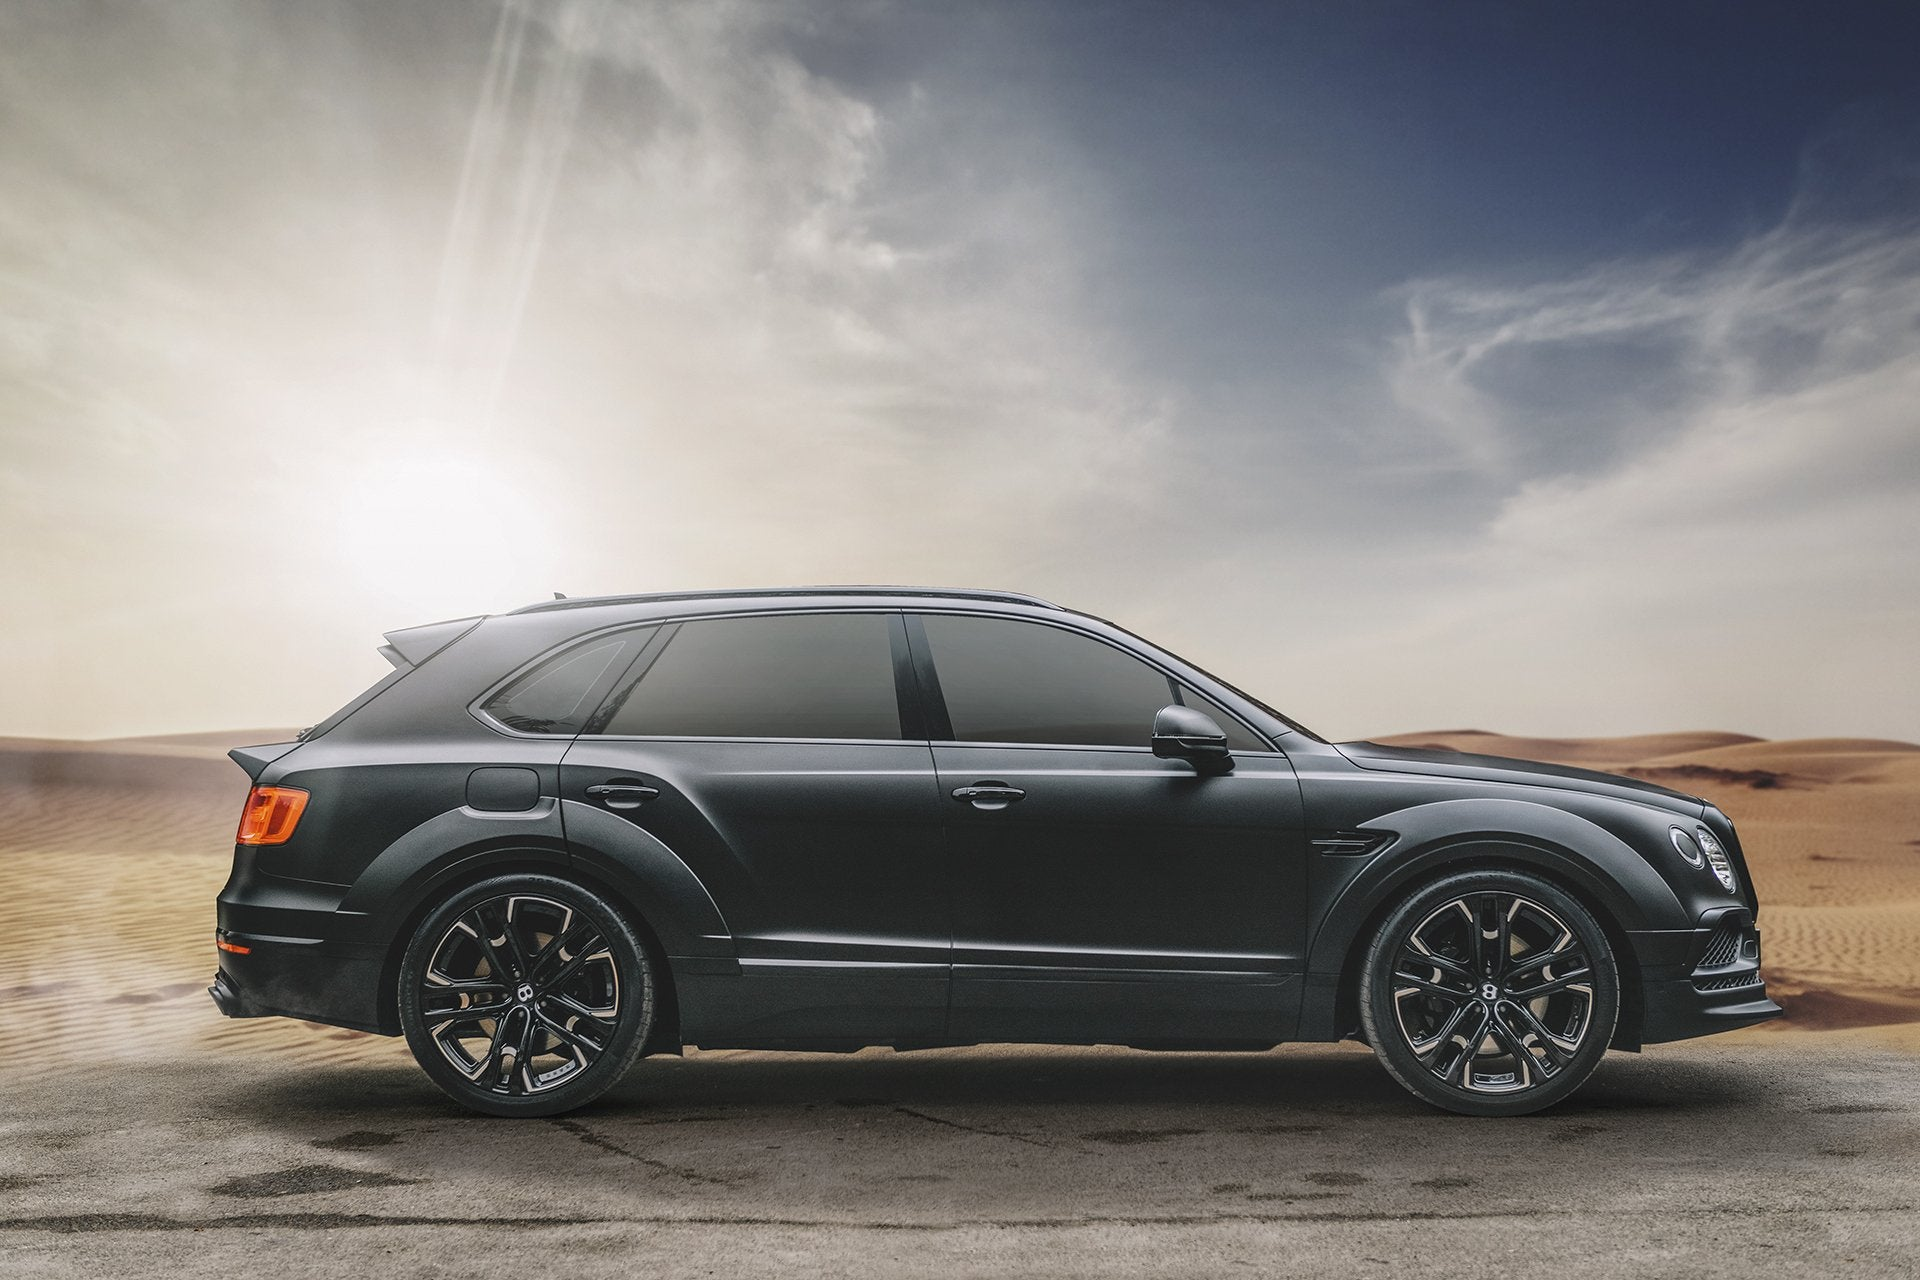 BENTLEY BENTAYGA (2016-2020) Wide Wheel Arch Pack - only compatible with Carbon Exterior Styling Pack